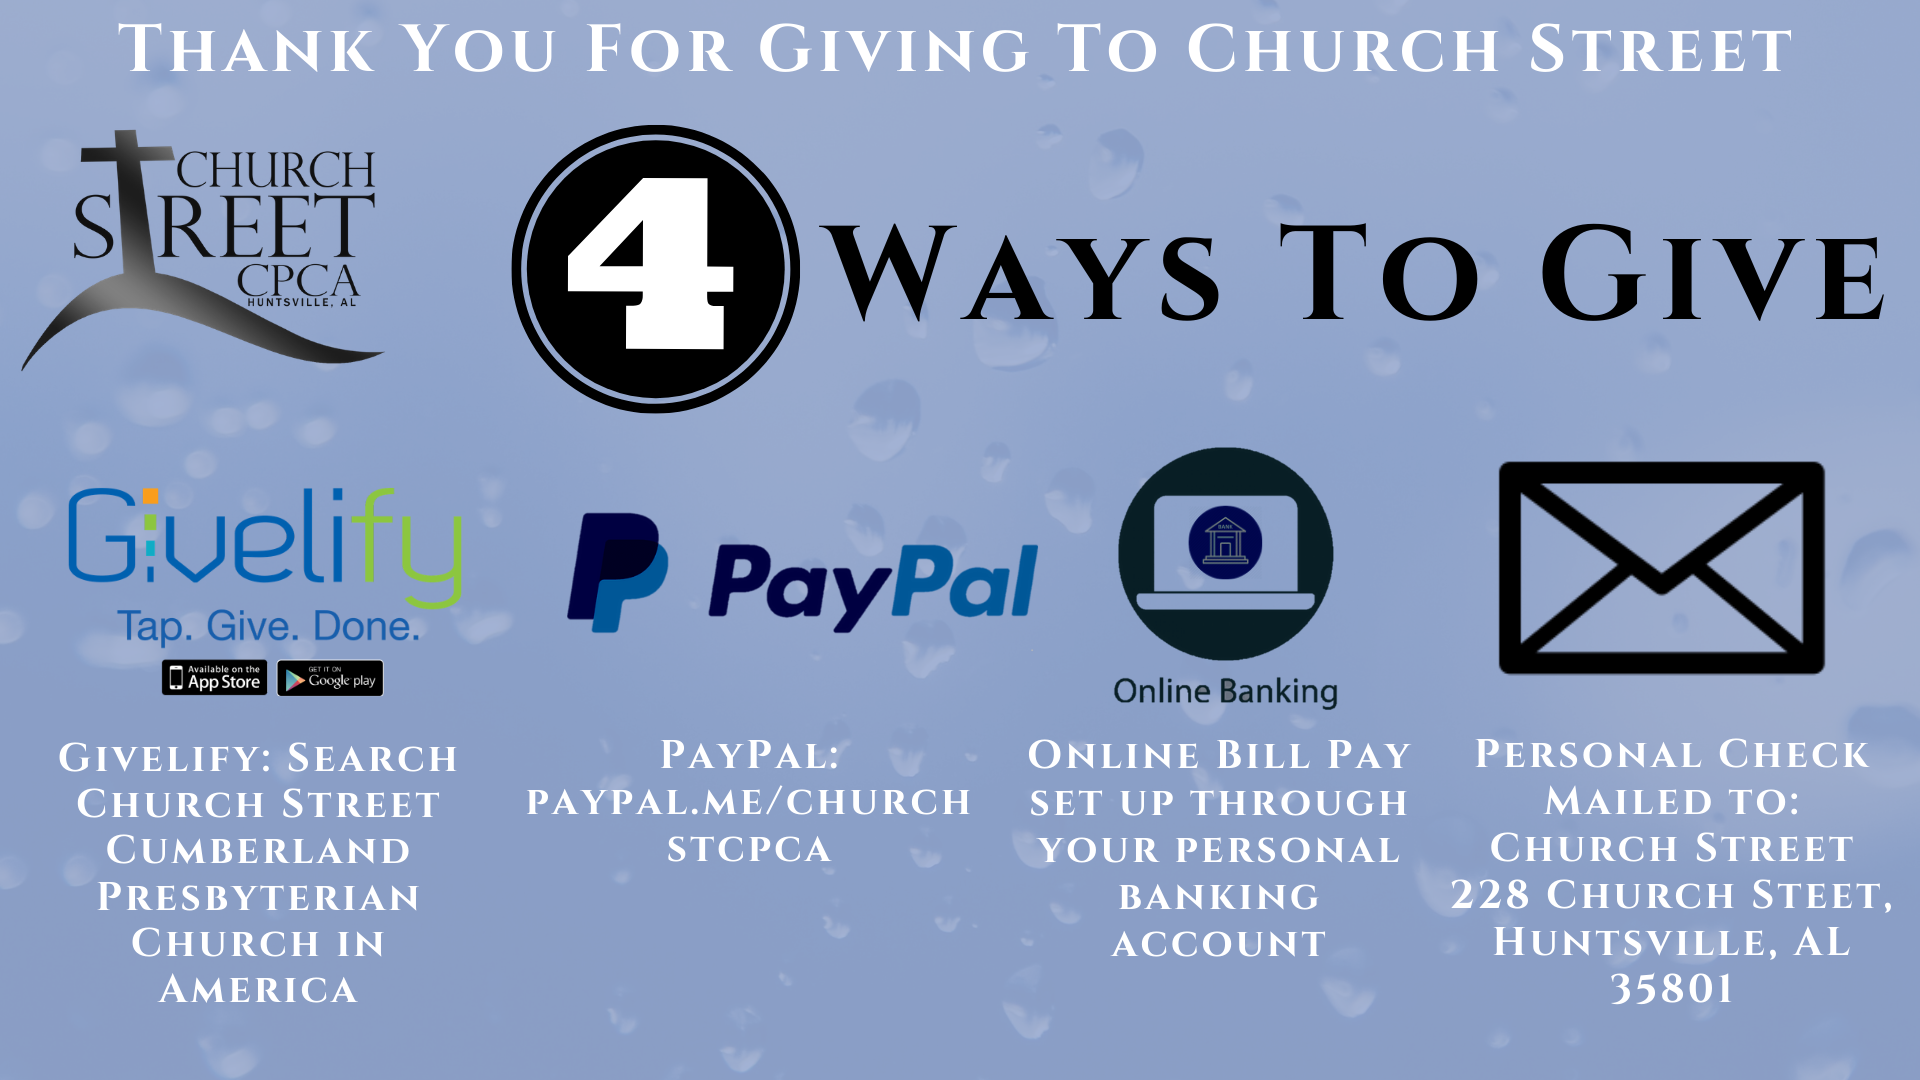 Ways_to_Give_to_Church_Street_R1.png